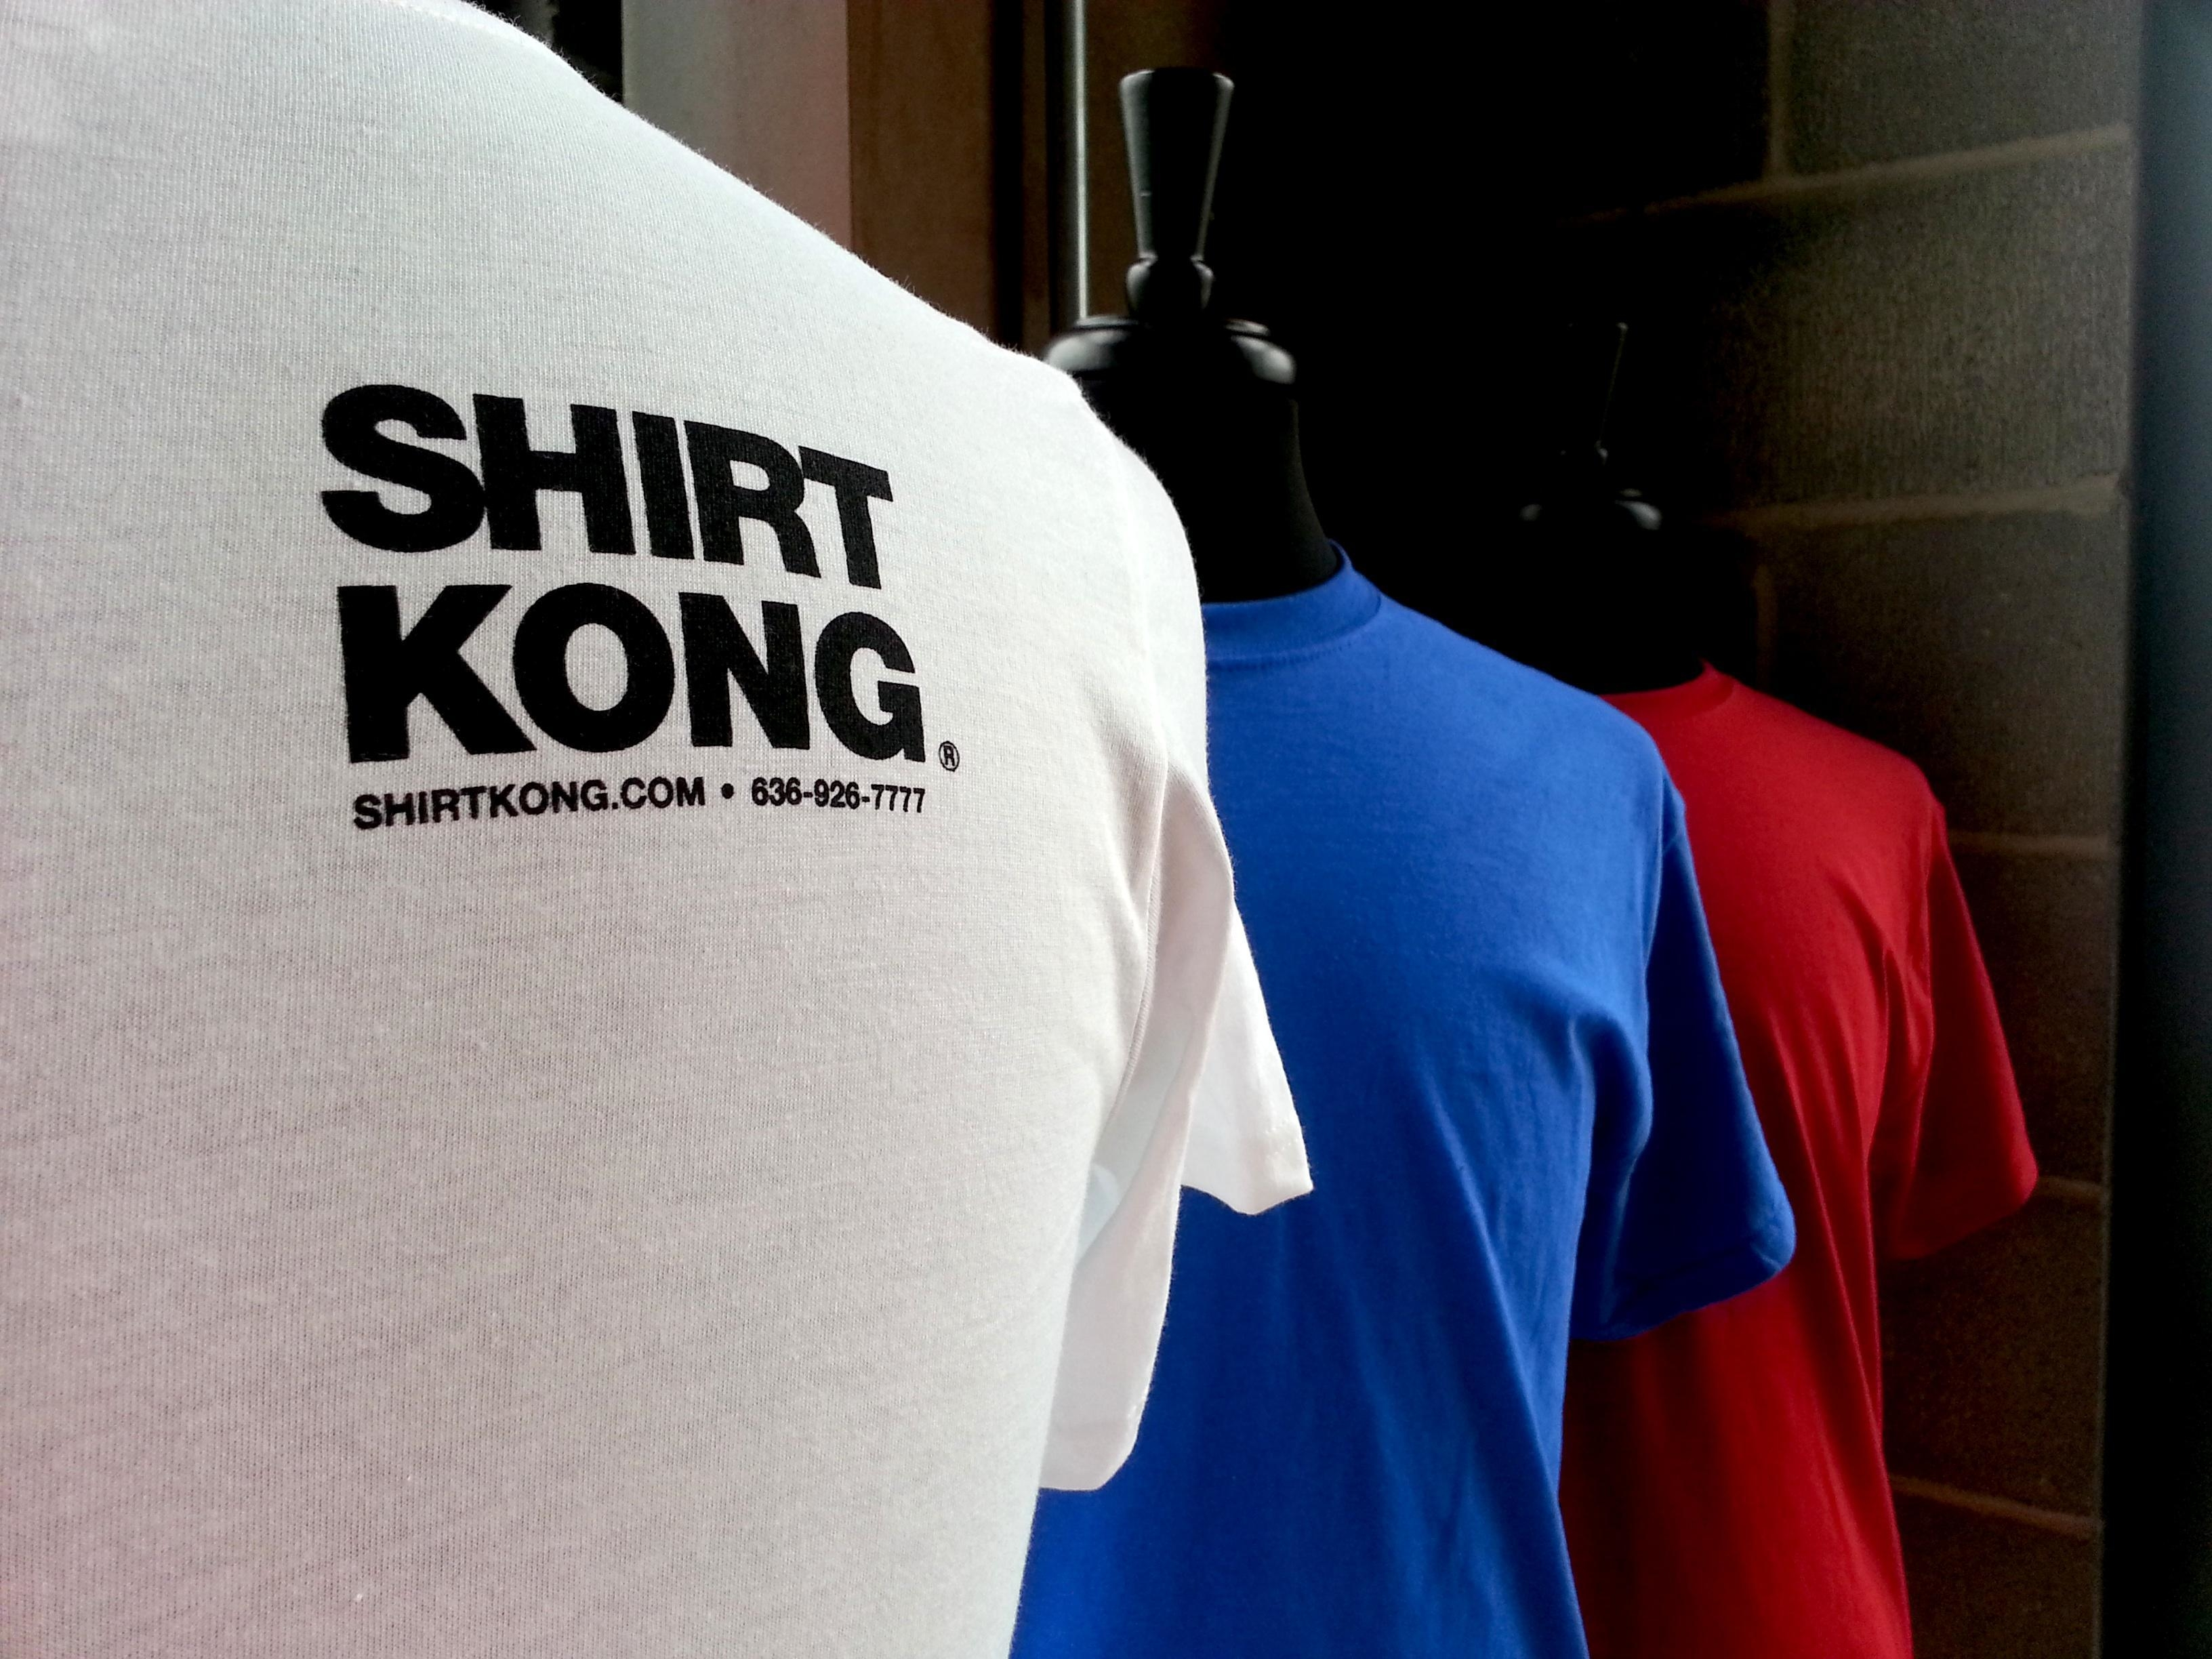 shirt kong in st peters mo 636 926 7